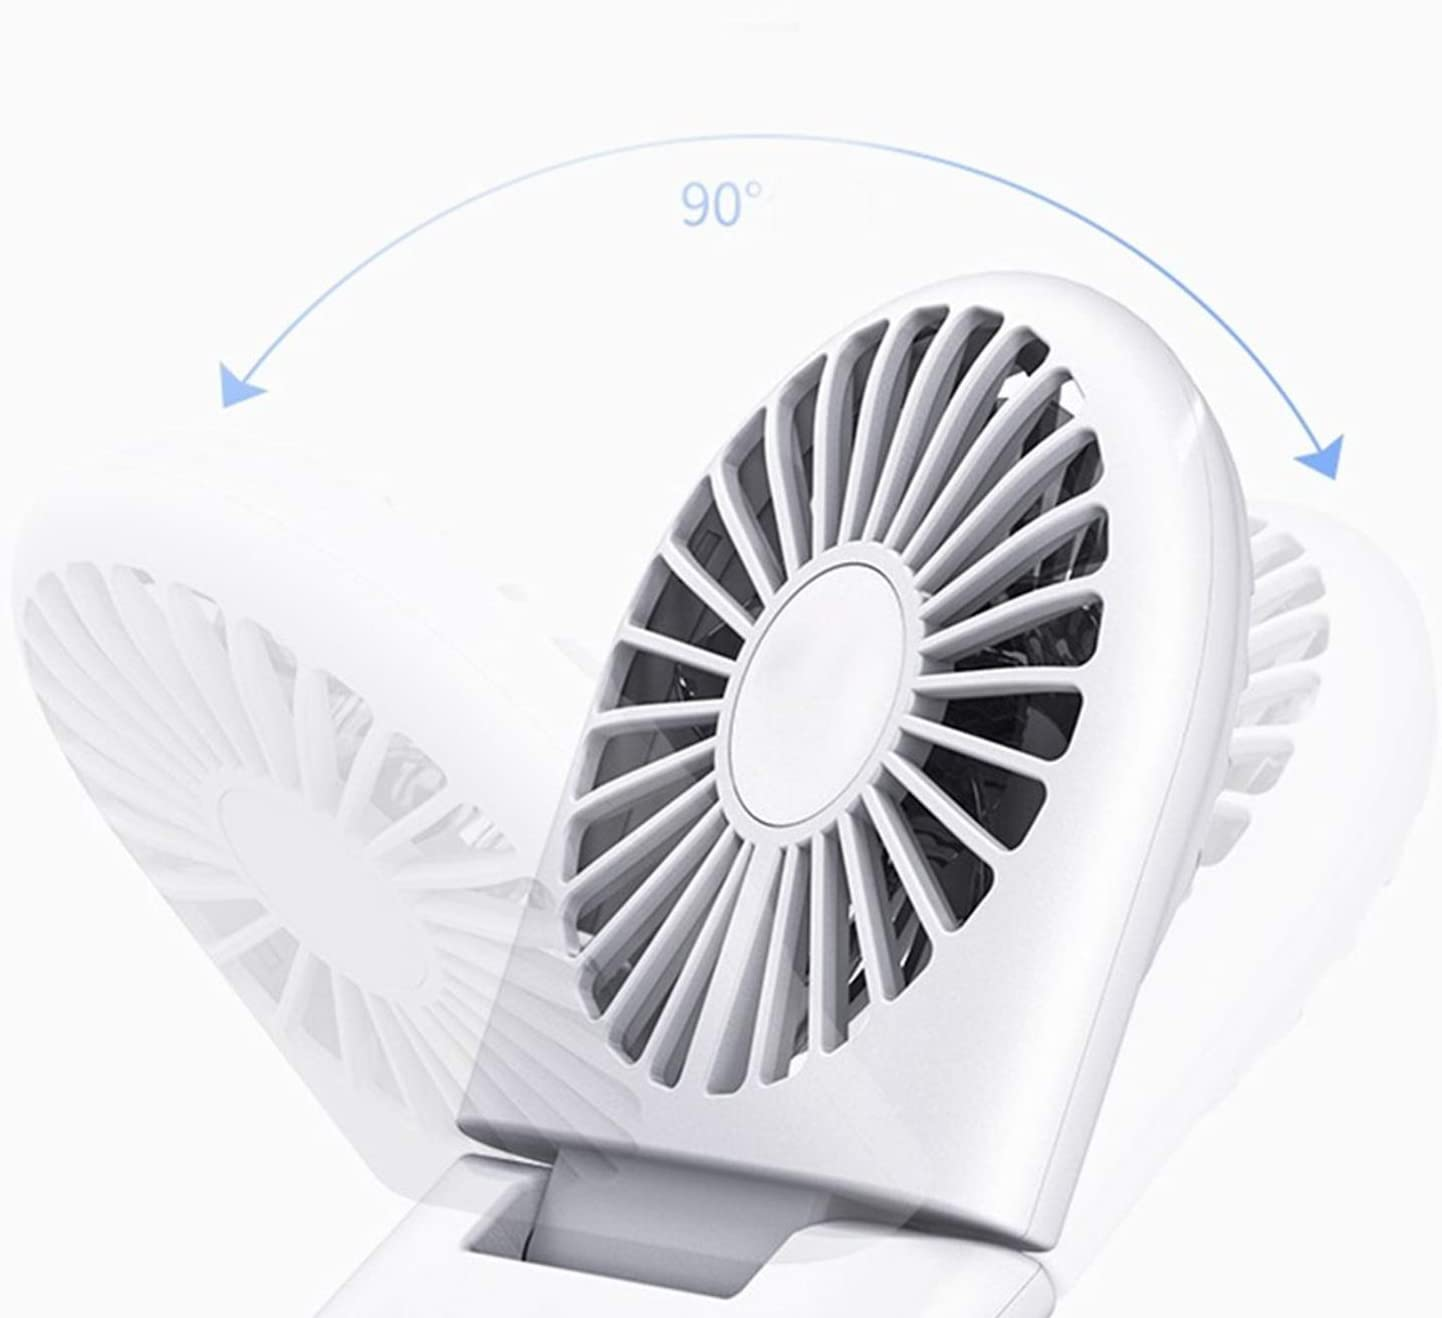 XIAOF-FEN Mini Hanging Neck Fan USB Portable Handheld Personal Fan Sucker Phone Holder Office Desktop Electric Fan USB Fan Color : White